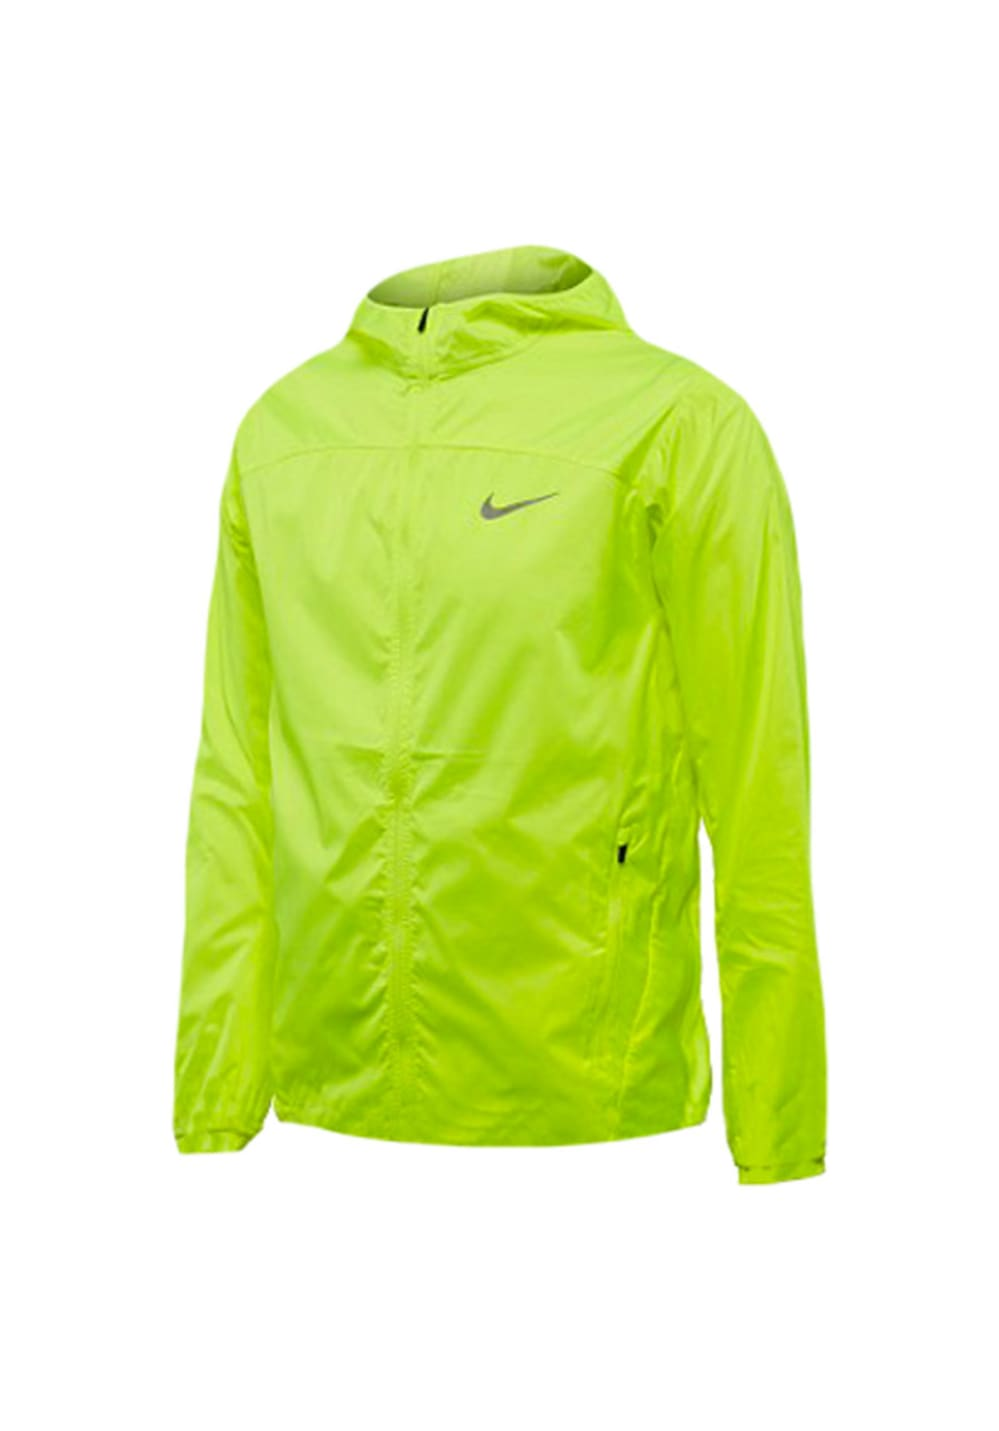 28604e59e90f Nike Shield Running Jacket - Running jackets for Men - Green